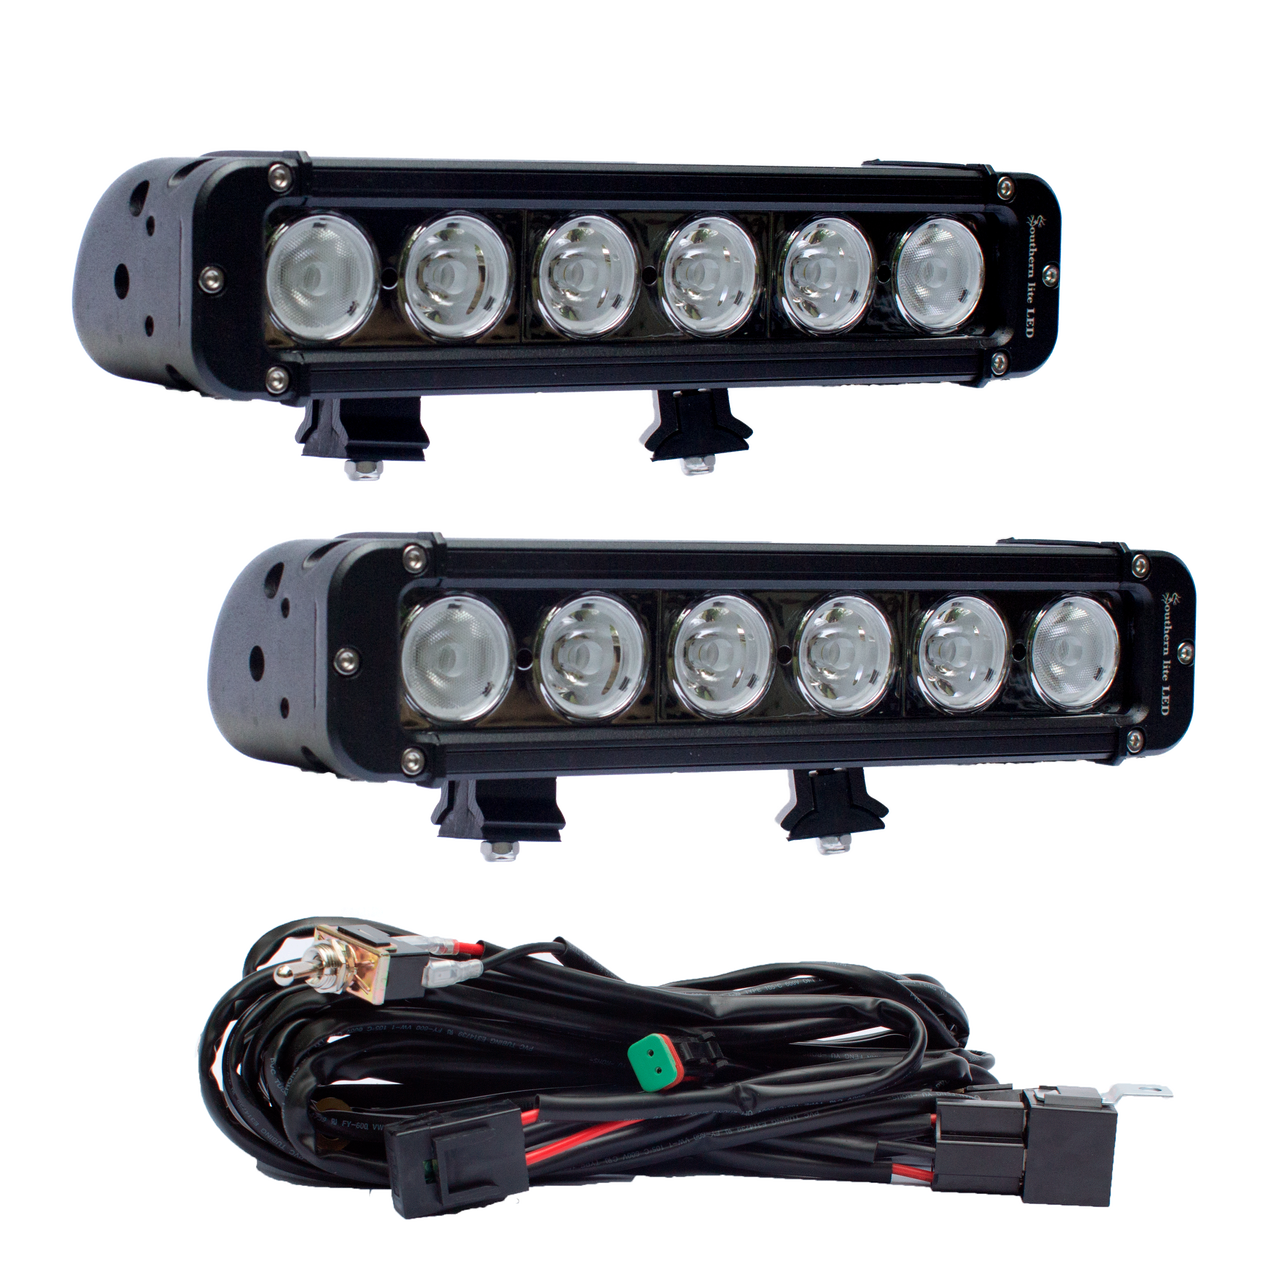 """Includes two: 11"""" Southern lite LED light bar - 60 Watts - over 6,000 Lumens each (over 12,000 Lumen total) - Spot/Flood Combo - Brackets and wiring harness included"""